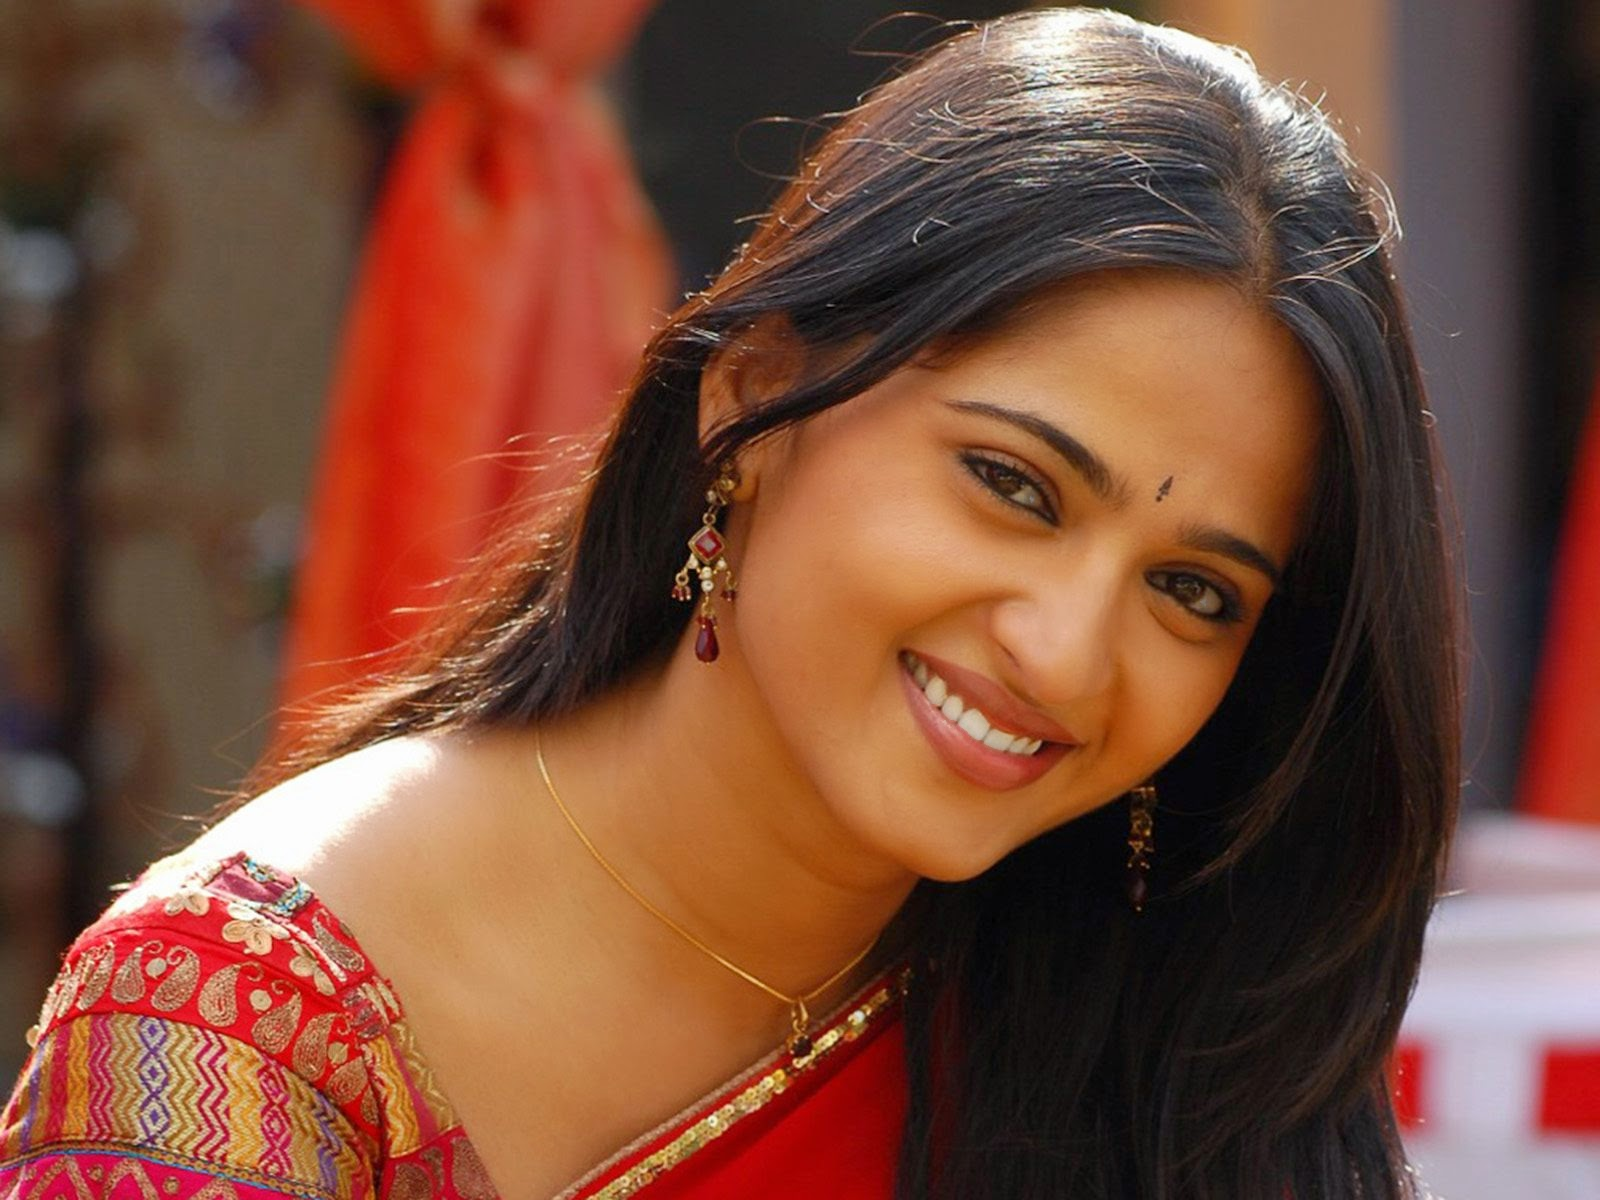 Anushka in red saree hd hot sexy wallpapers